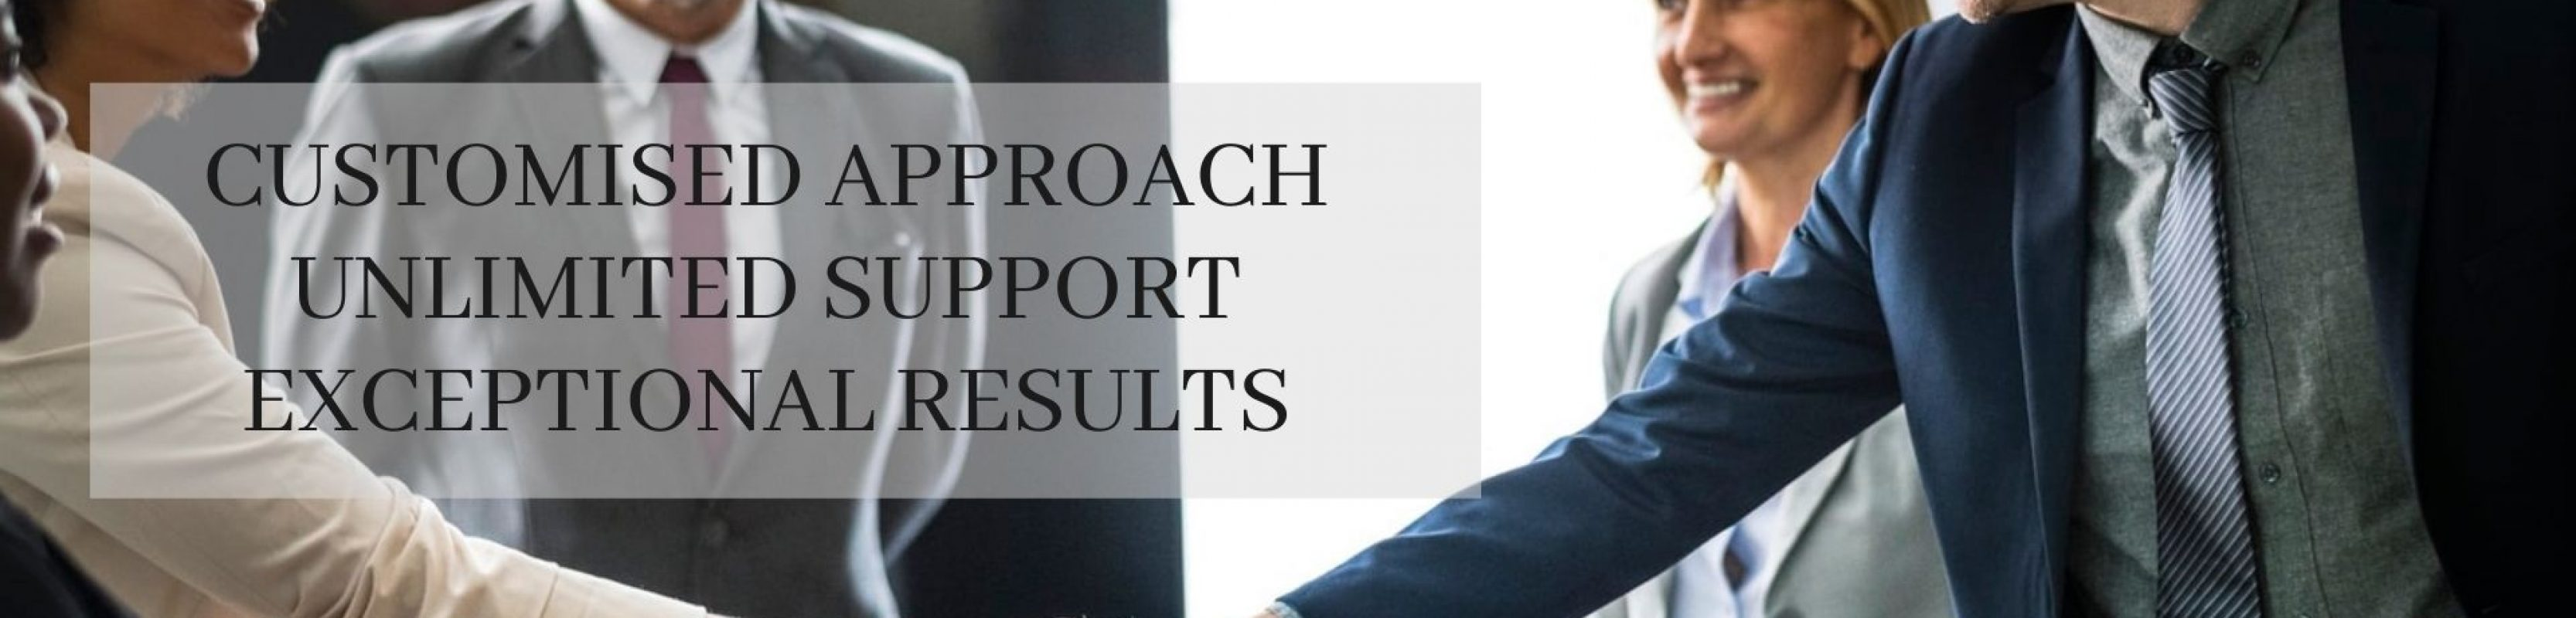 CUSTOMISED APPROACH UNLIMITED SUPPORT EXCEPTIONAL RESULTS (7)